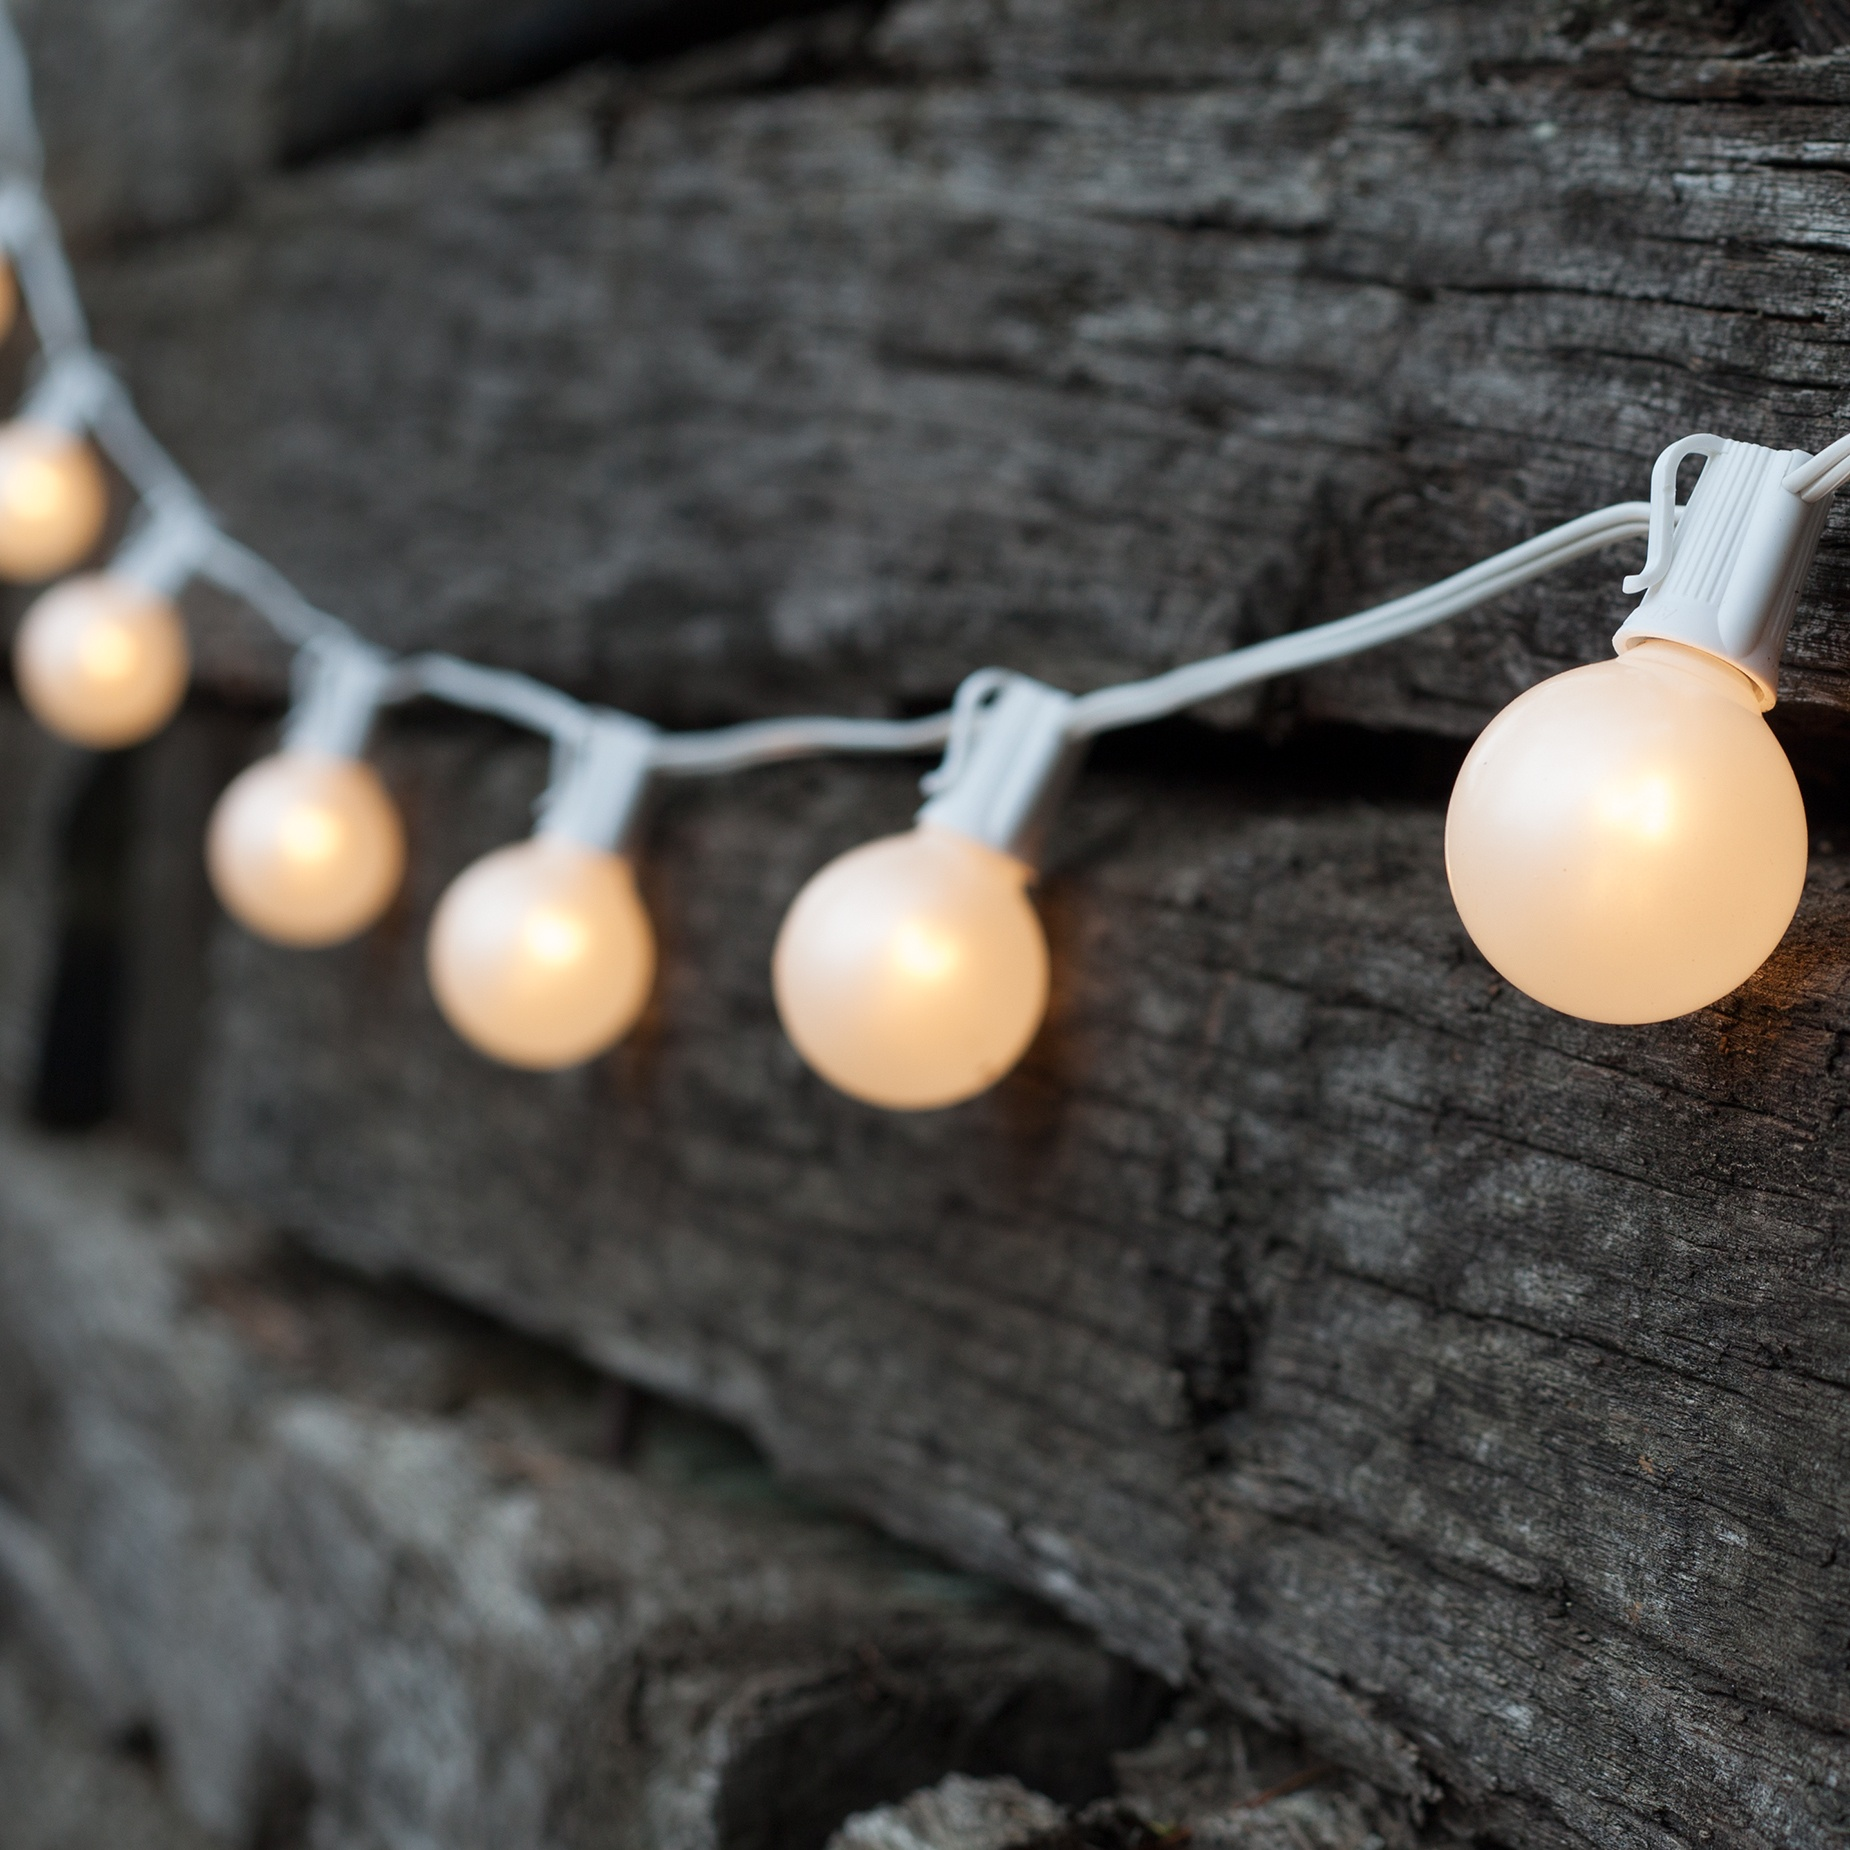 Globe String Lights White Cord : Patio Lights - Commercial White Satin Lights, 25 G50 E17 Bulbs White Wire